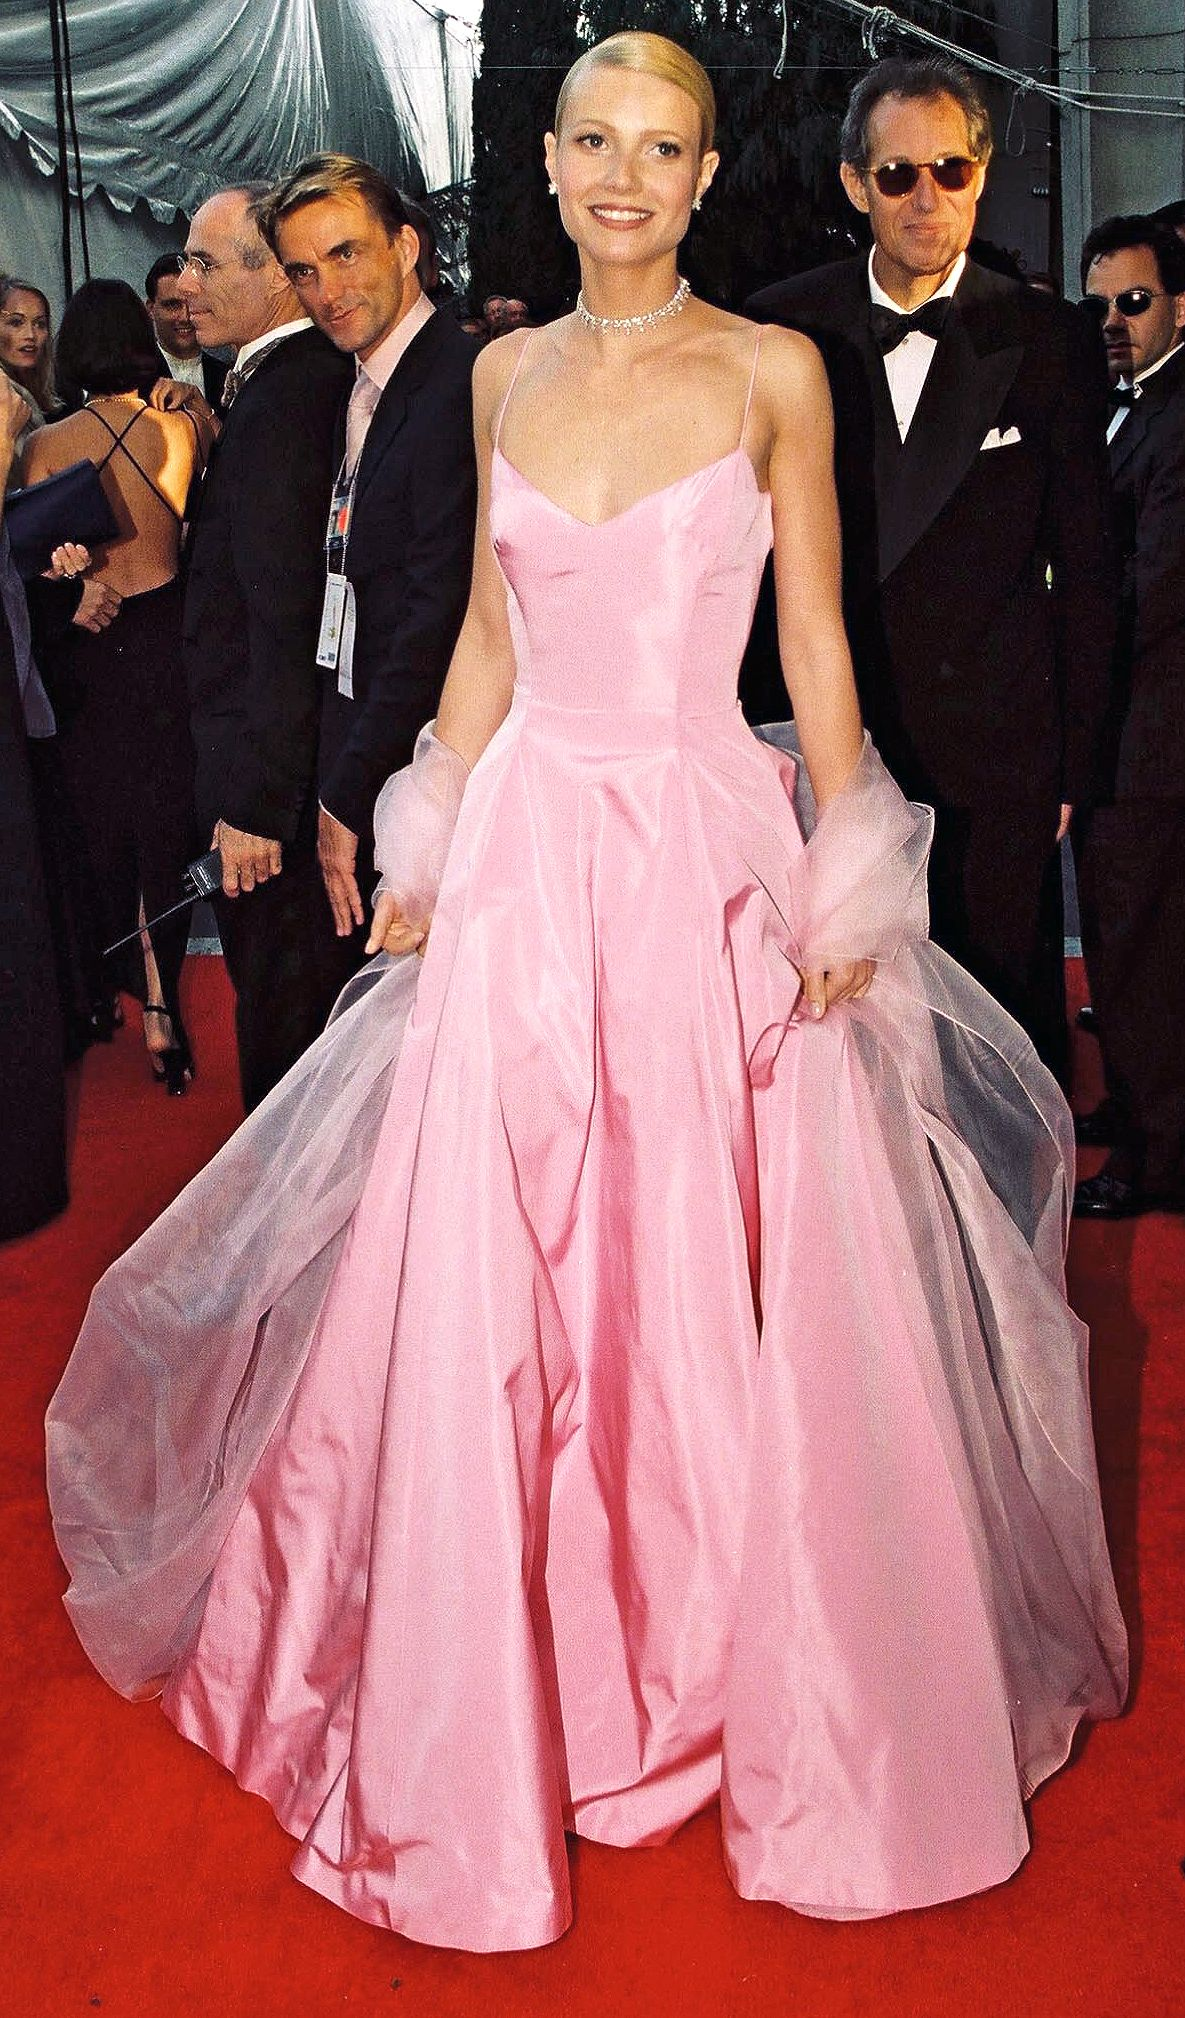 Oscars Tbt The Dresses You Need To See All Over Again Best Oscar Dresses Iconic Dresses Oscar Dresses